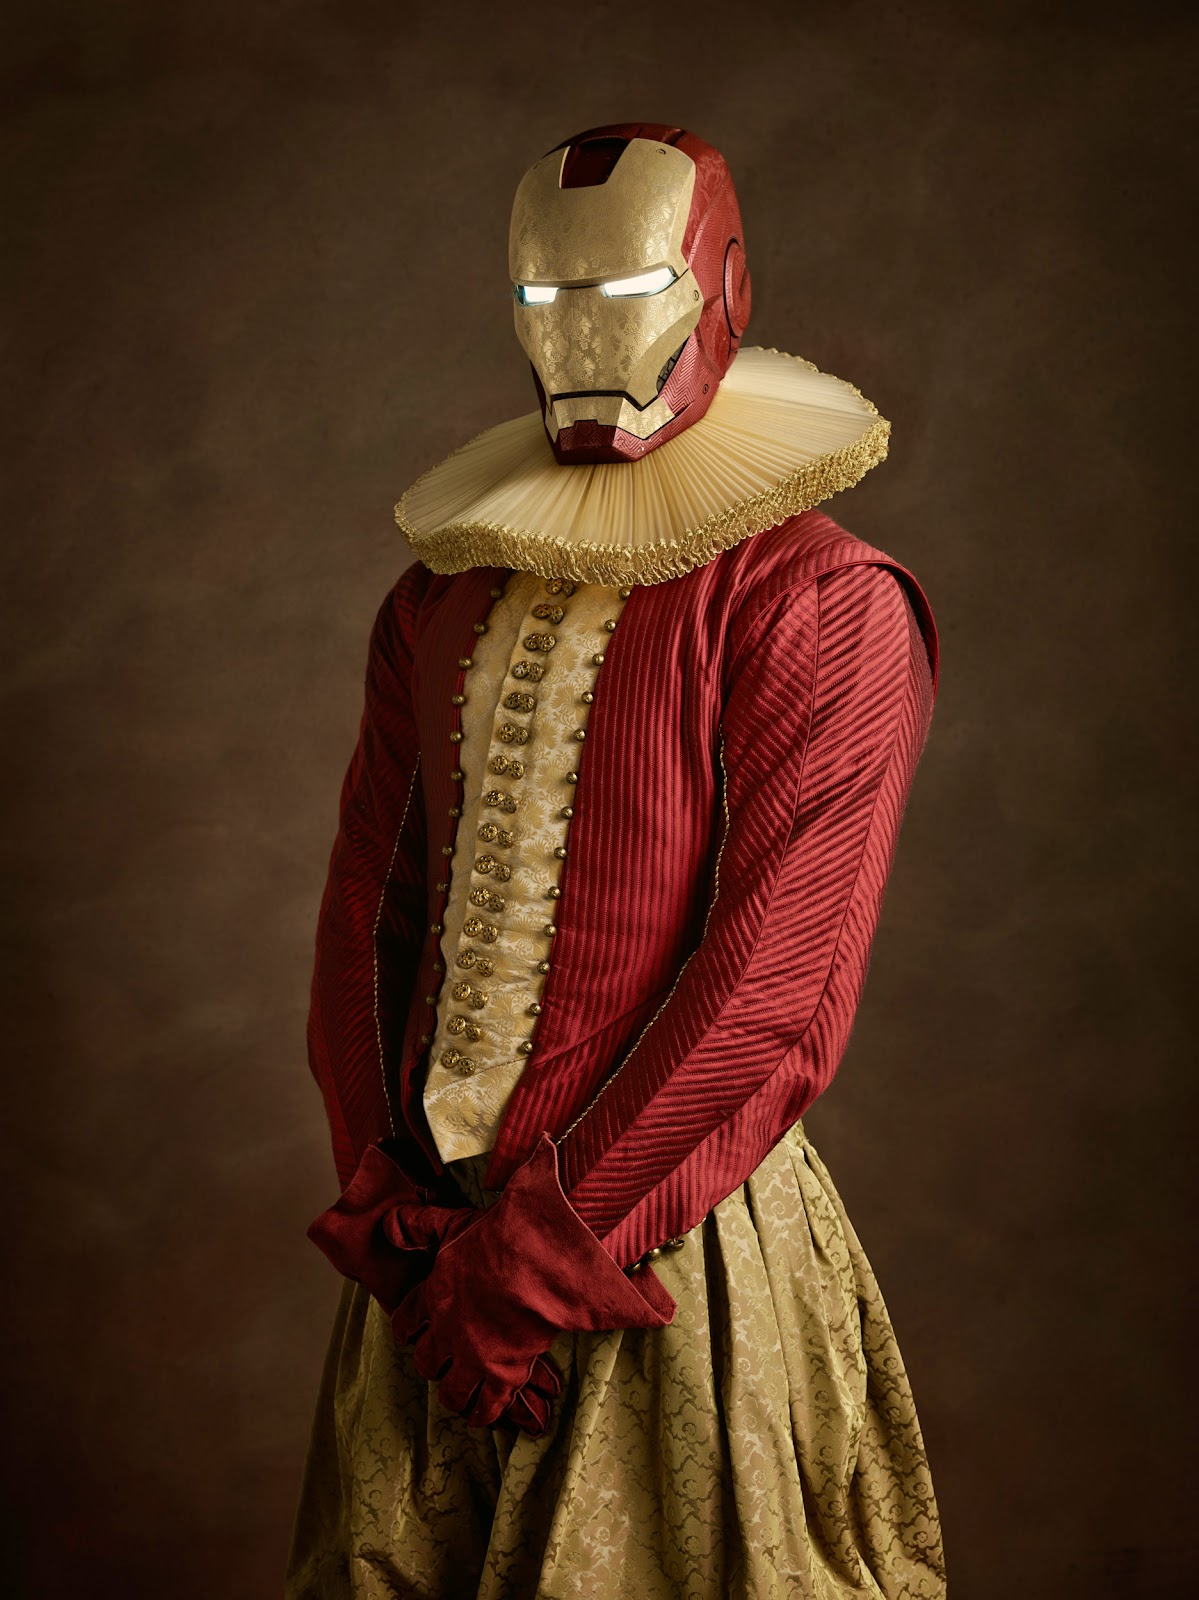 17-Iron-Man-Robert-Downey-Jr-Sacha-Goldberger-Superheroes-in-the-1600s-www-designstack-co